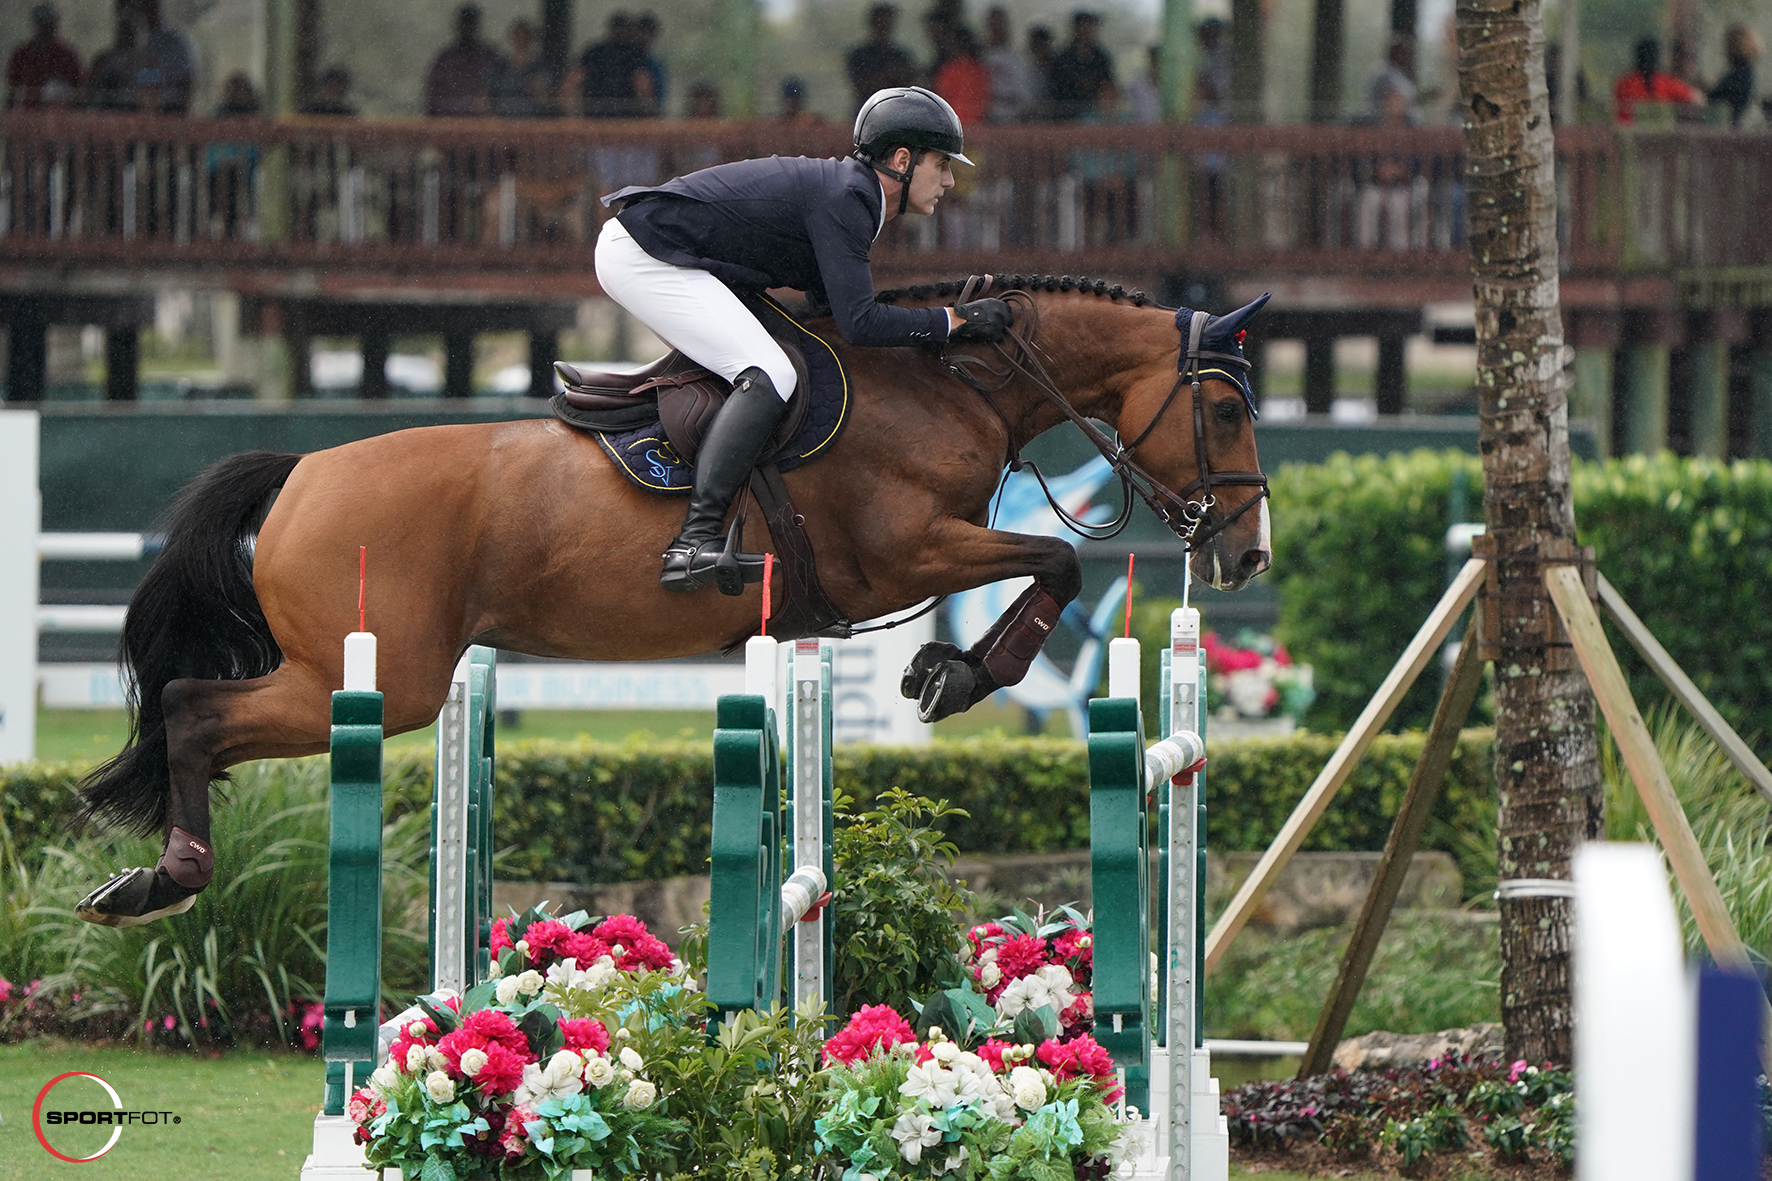 Peter Lutz and Quinta 106 by Sportfot 528_3478